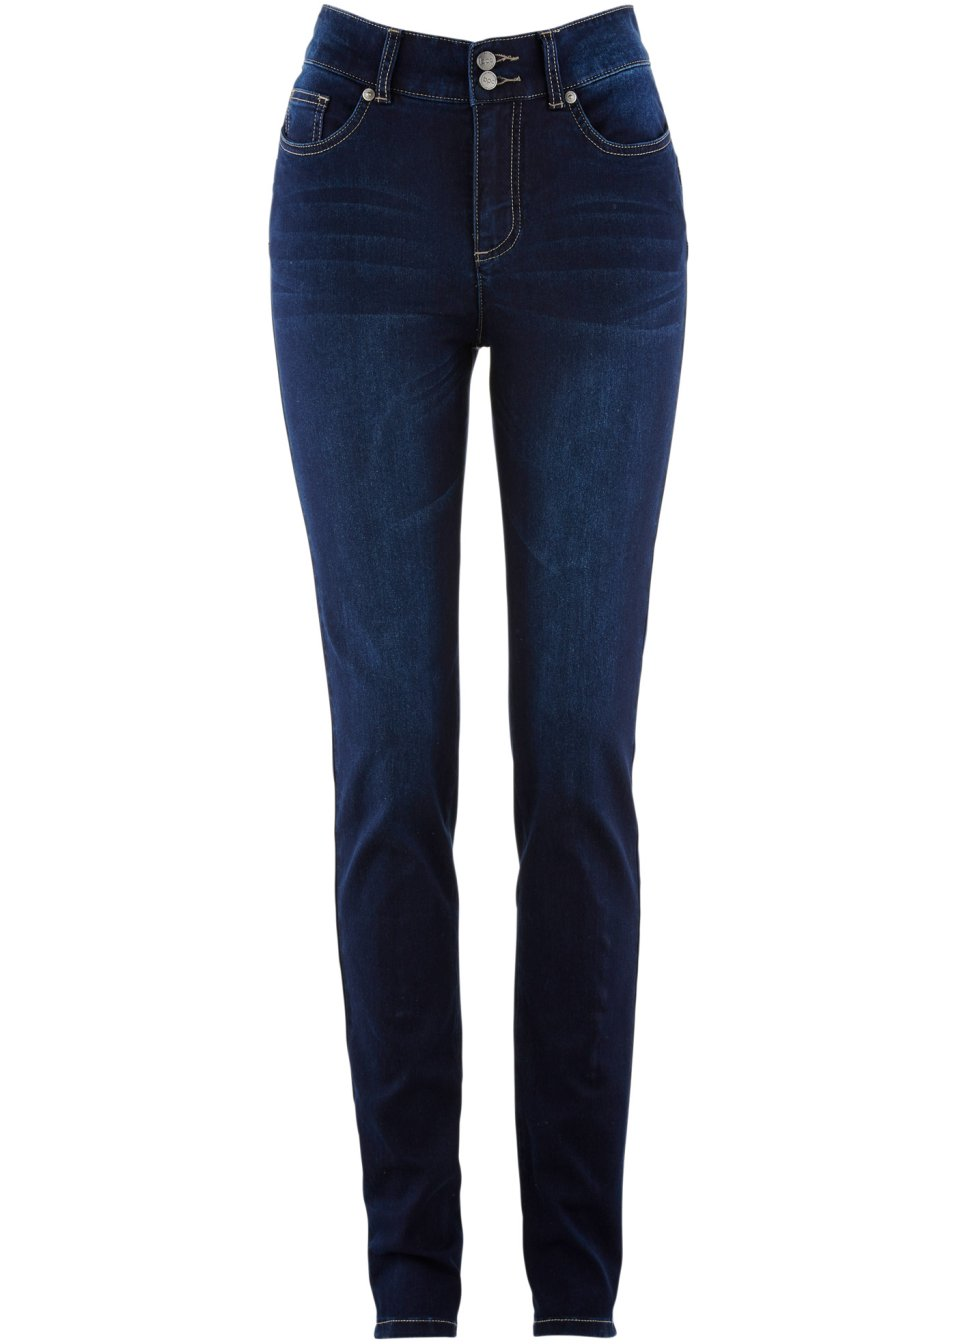 Modische Stretch-Jeans mit Push-up-Effekt - dark denim rOLhT 7kAwz